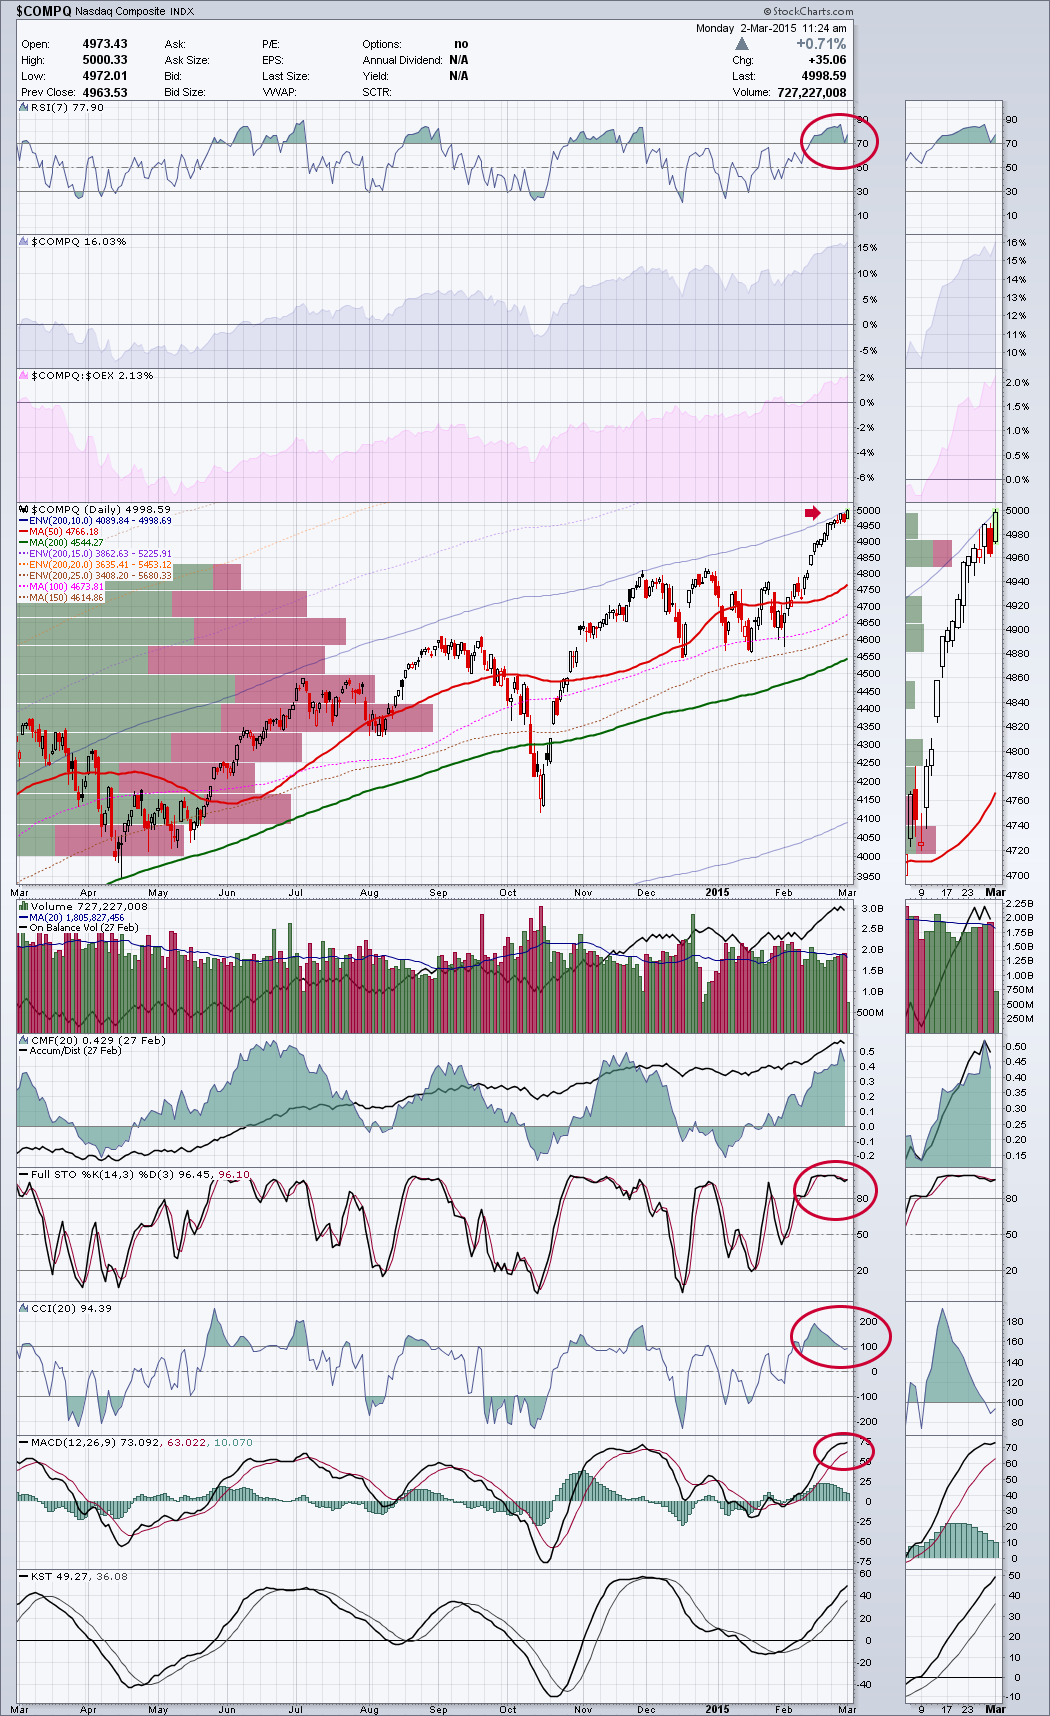 nasdaq-comp-annotated